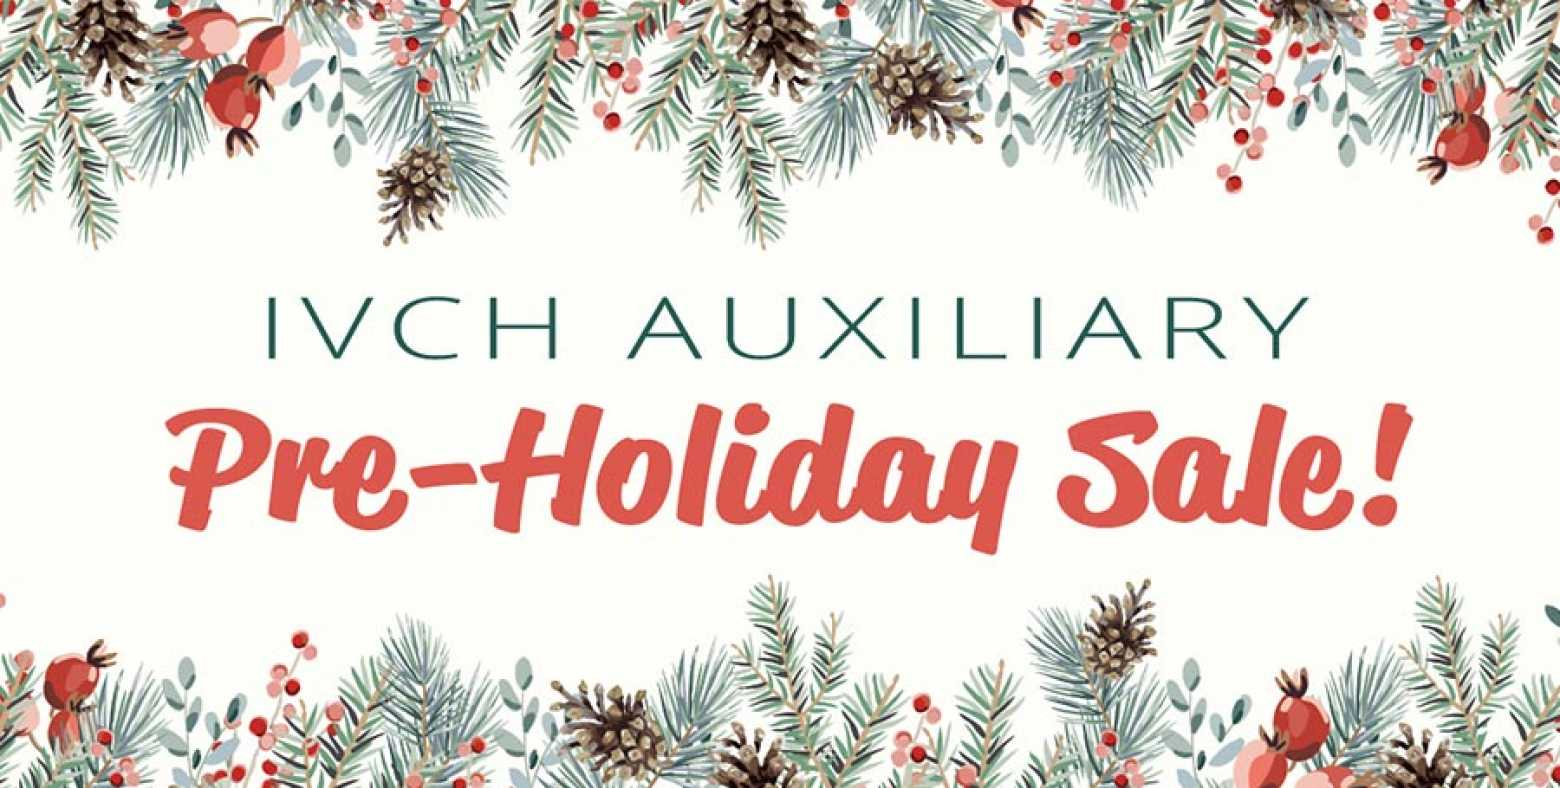 IVCH Auxiliary pre-holiday sale!